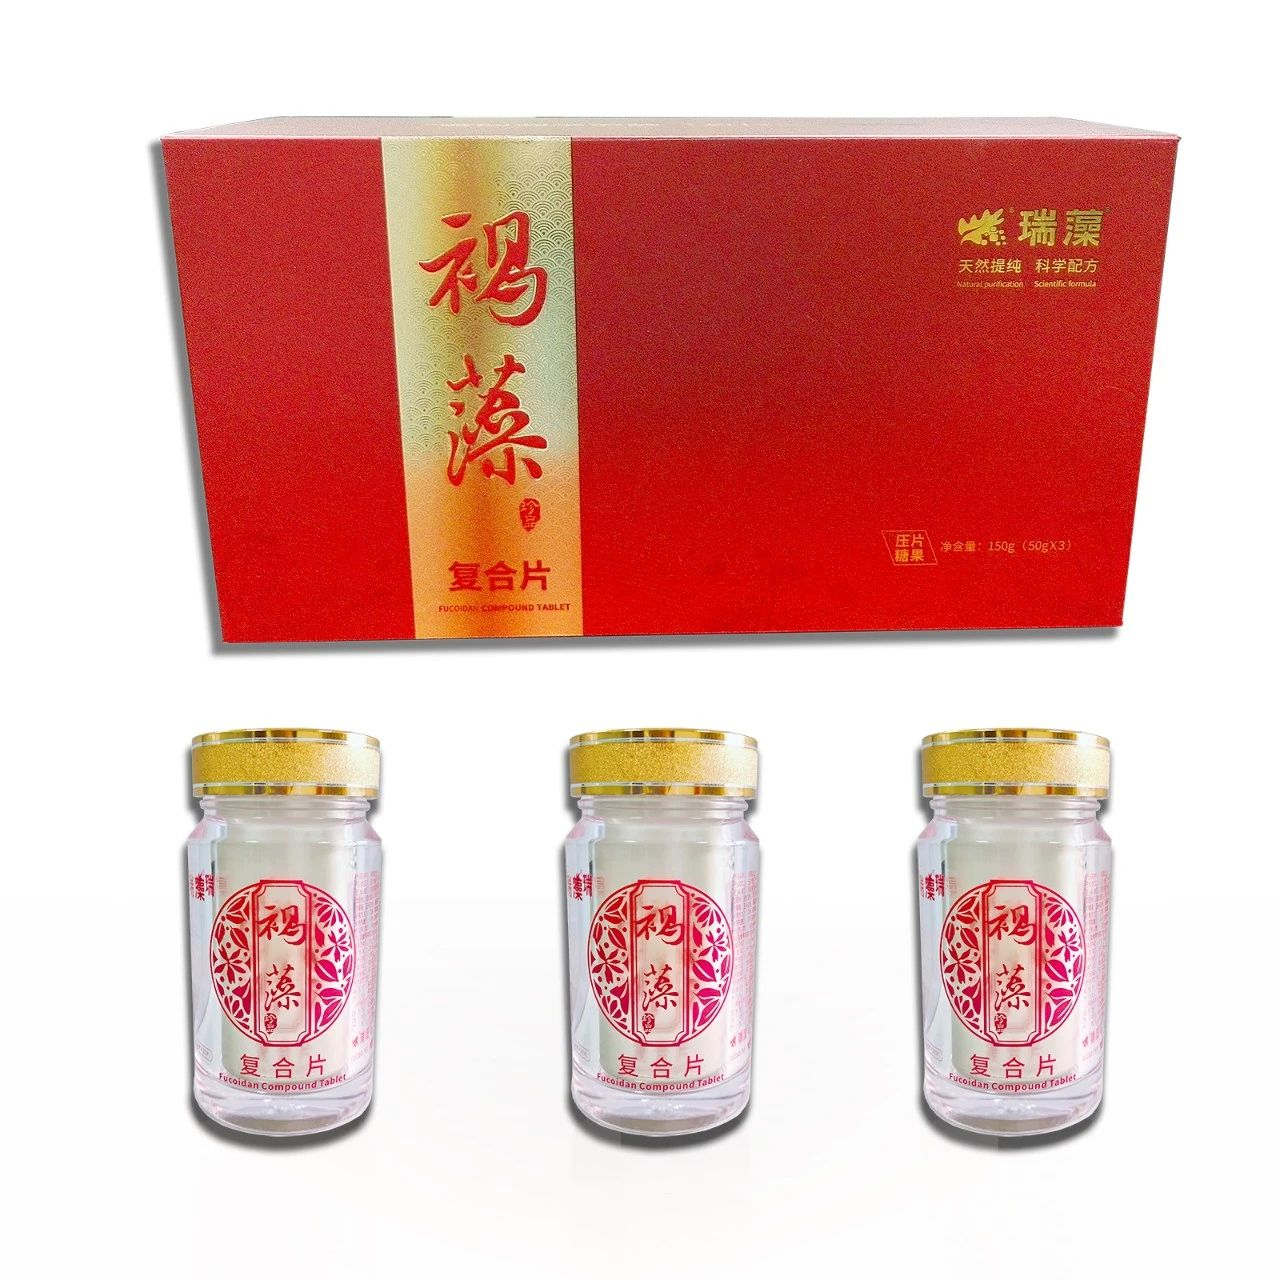 RuiZao · Fucoidan Compound Tablet,Red gift box (3 bottles / box)